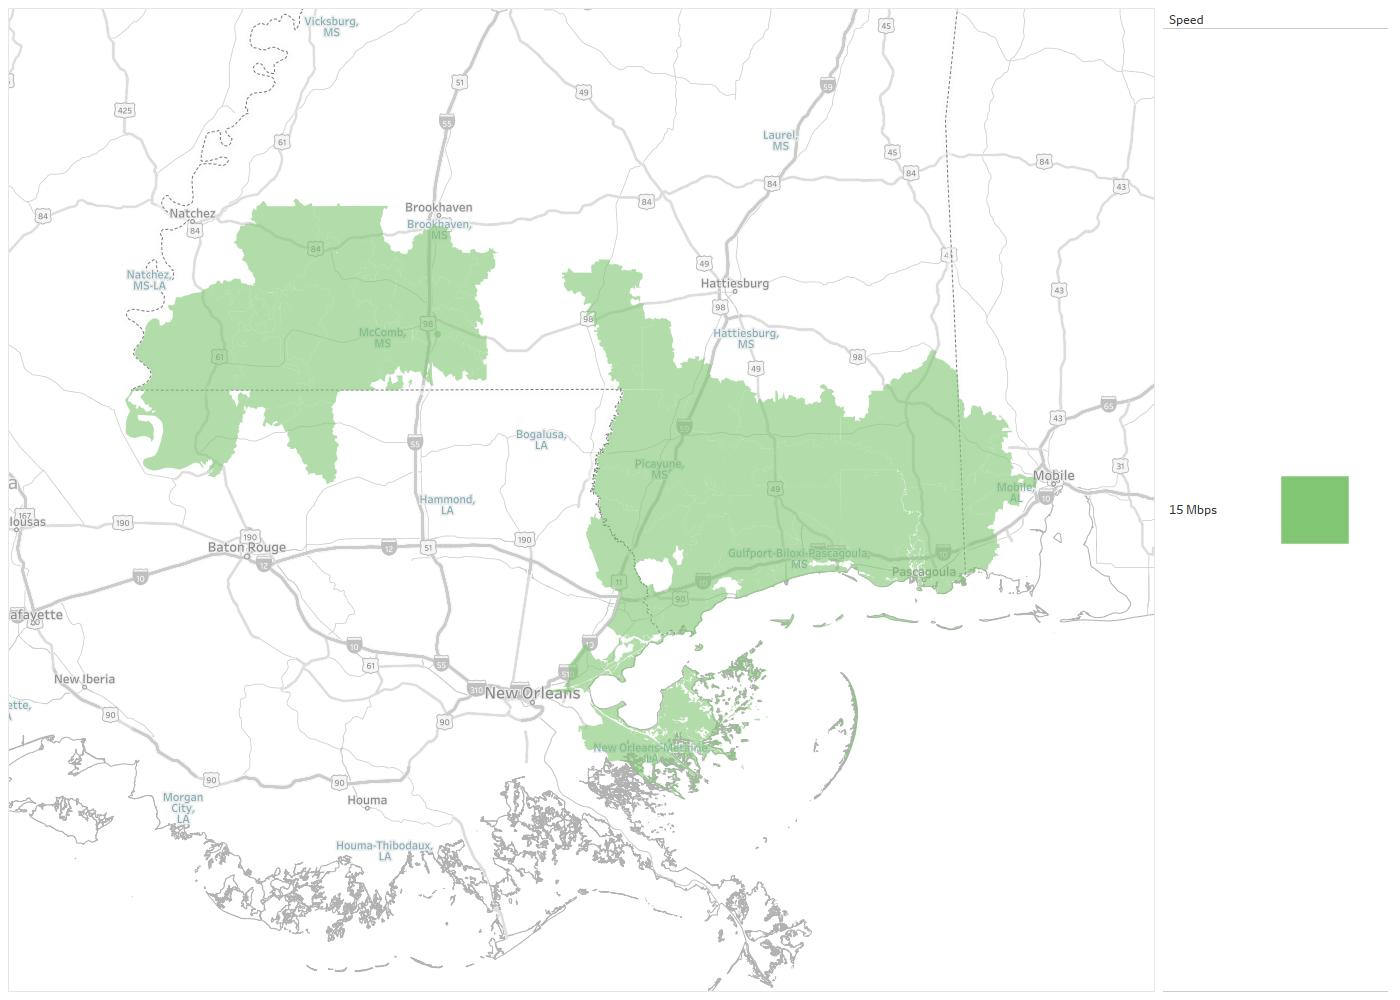 DSL ByAir Availability Areas & Coverage Map | Decision Data on